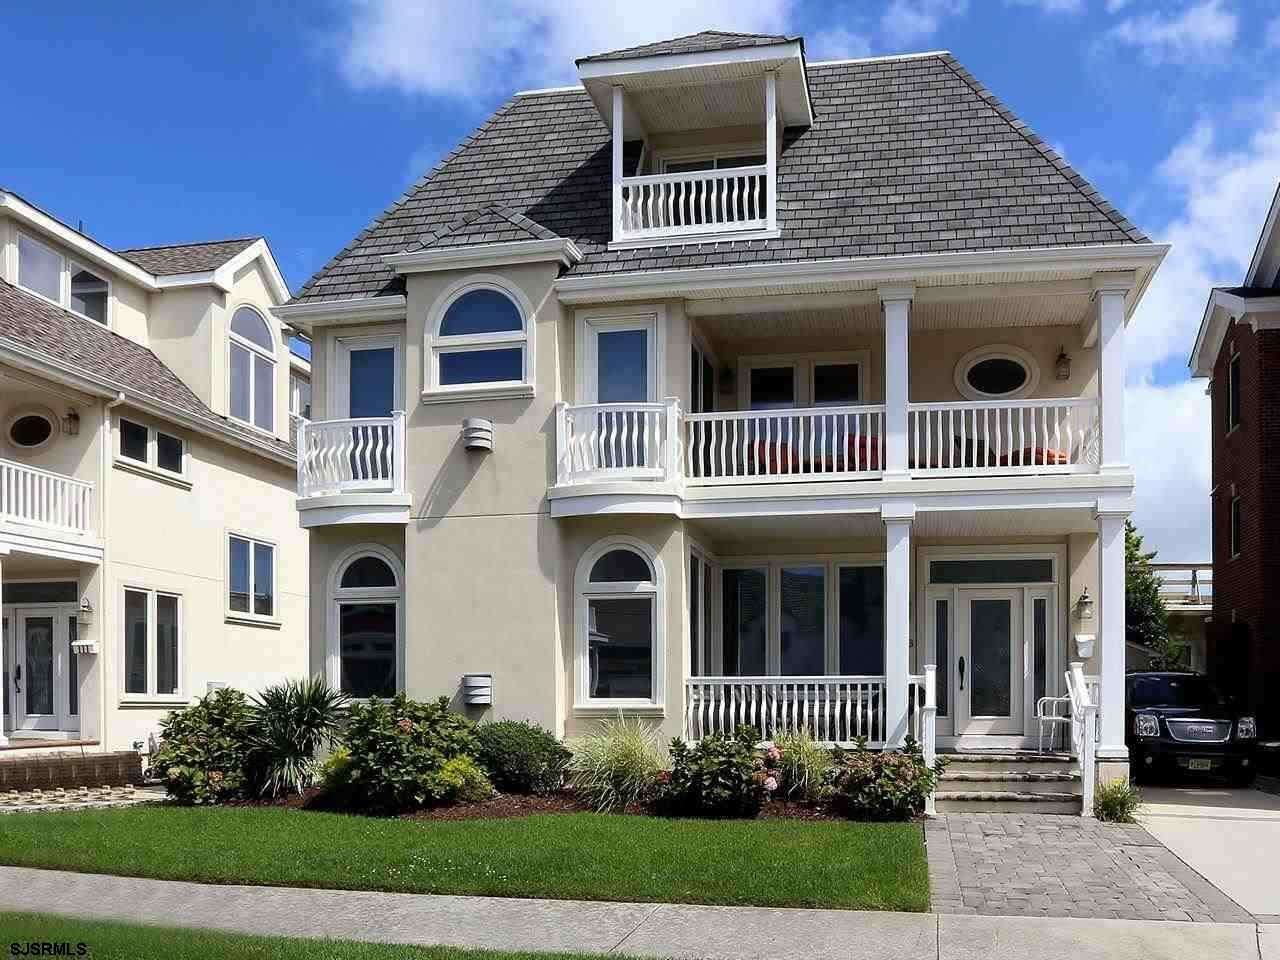 Single Family for Sale at 113 S Harvard Ventnor, New Jersey 08406 United States